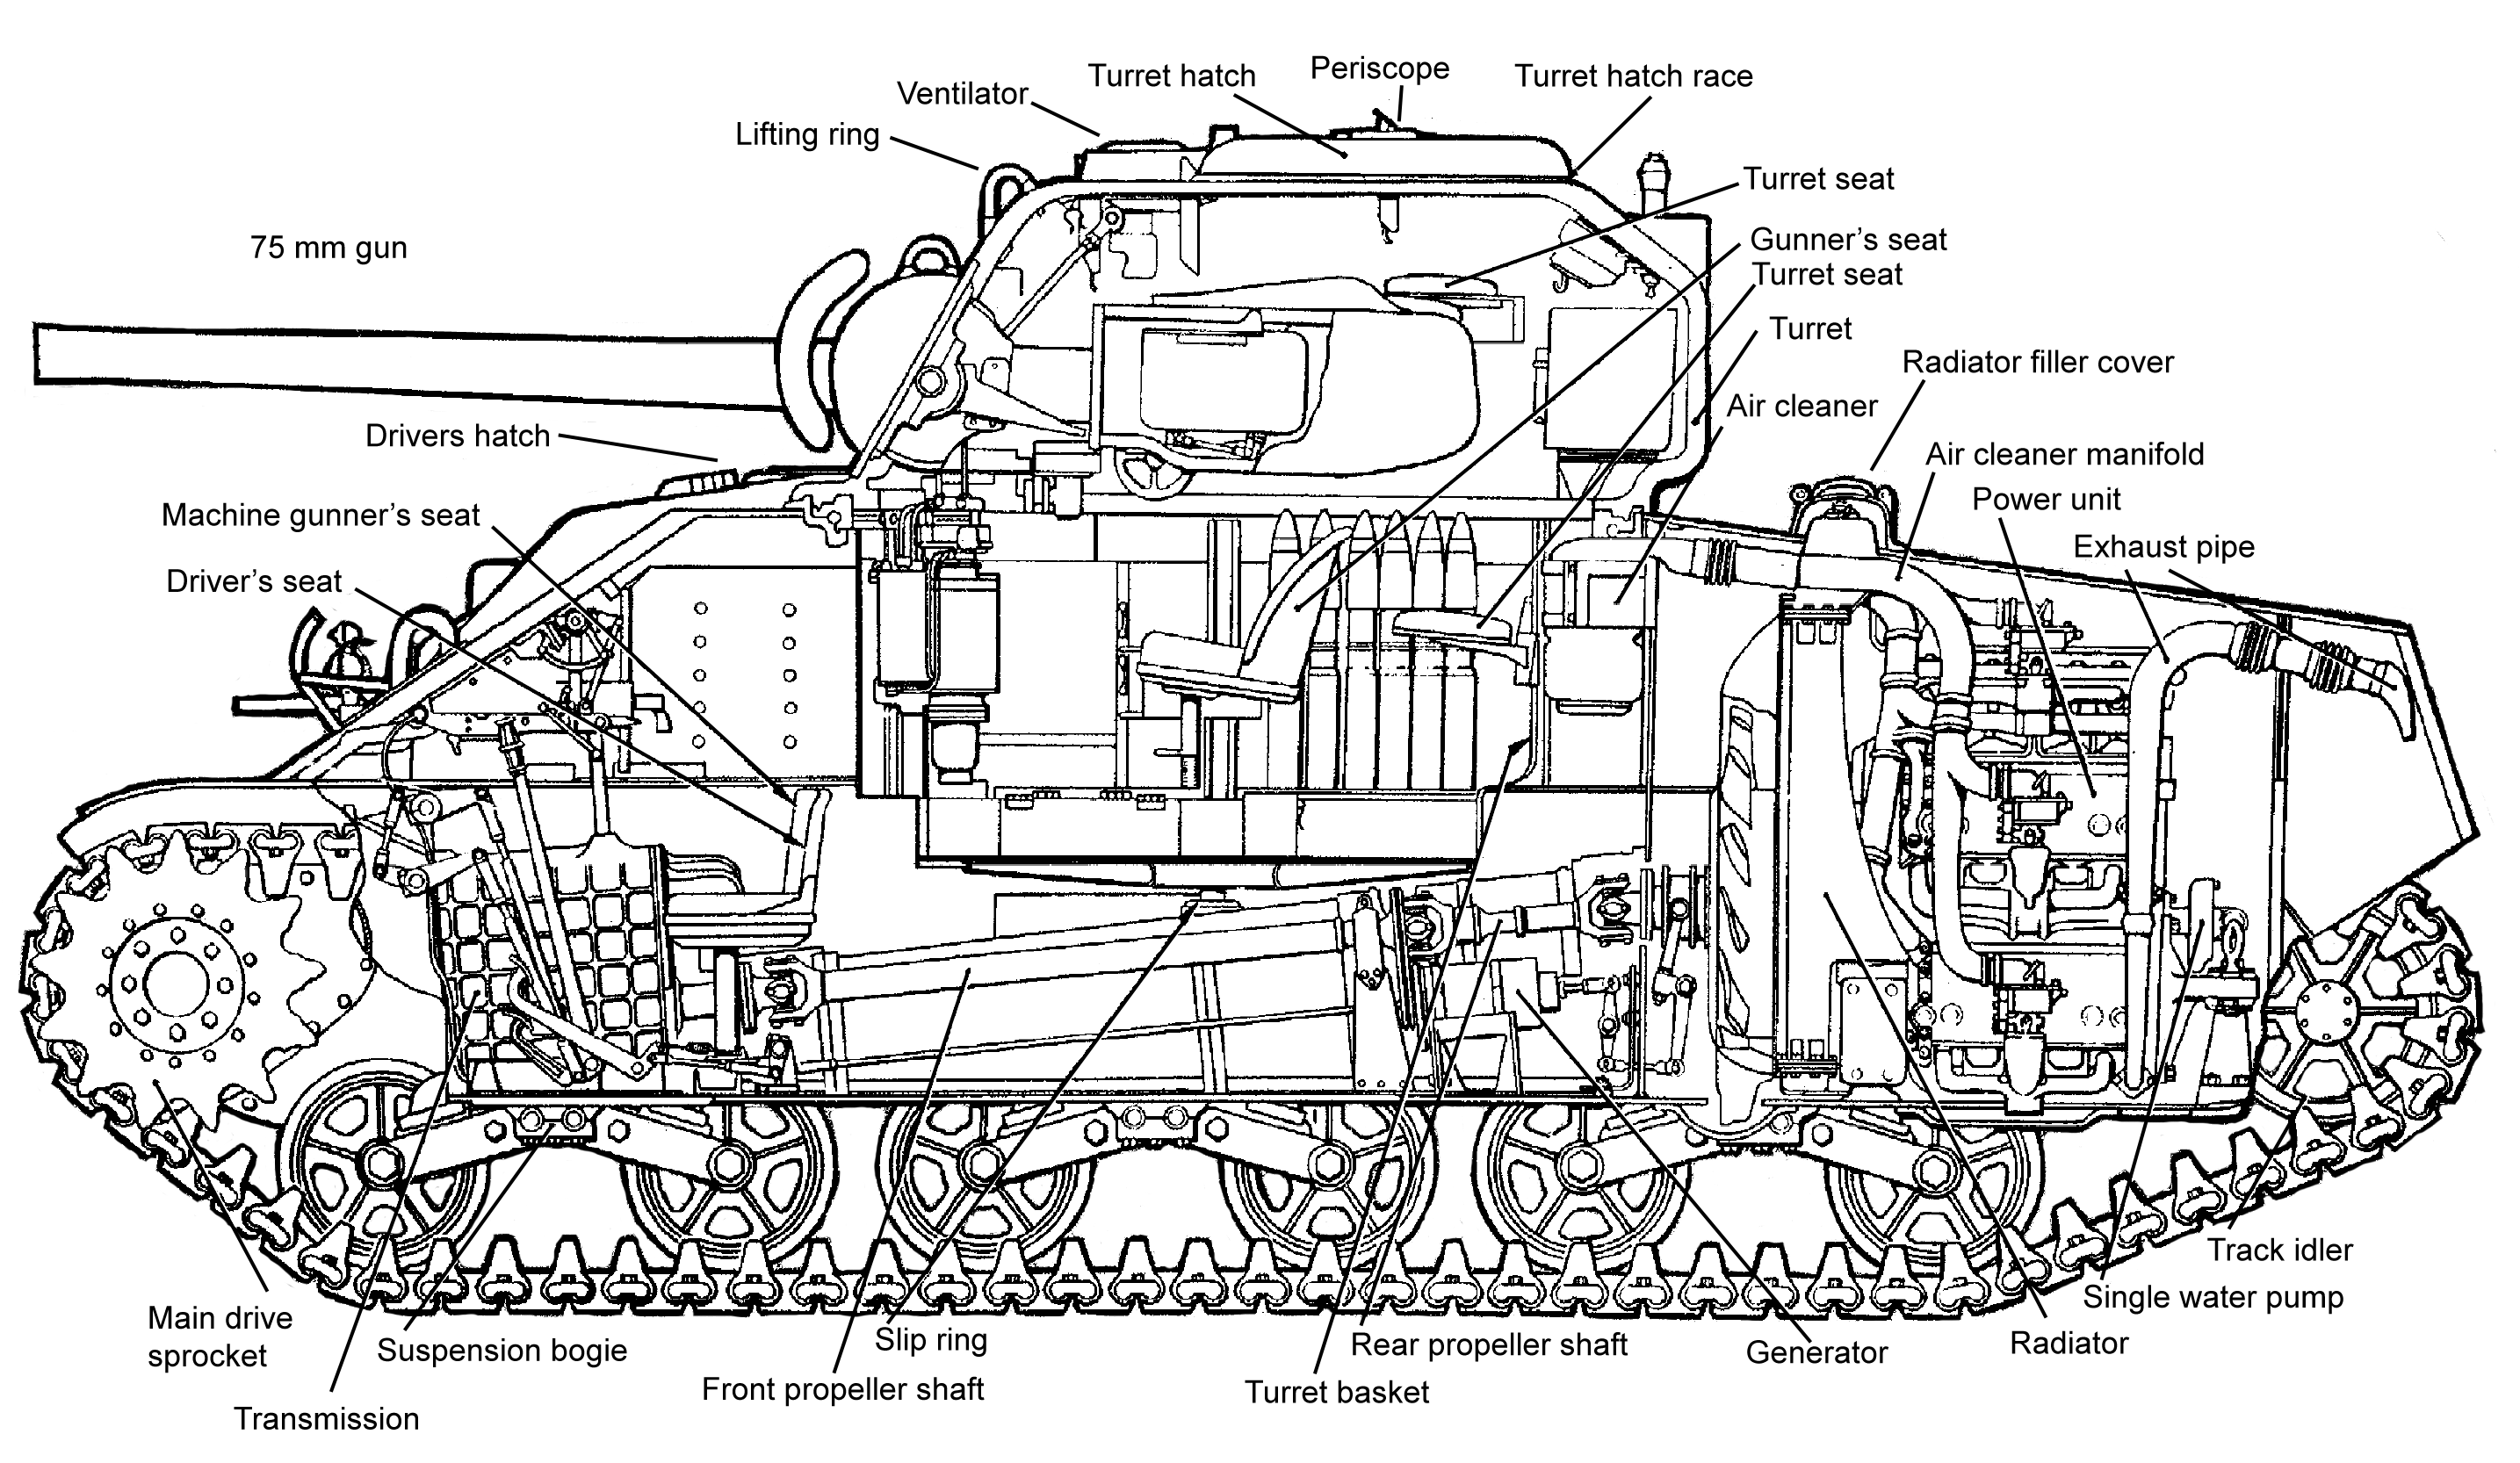 Diagram Of 1987 Porsche 911 Engine Electrical Wiring Tank Get Free Image About Black Carrera Convertible